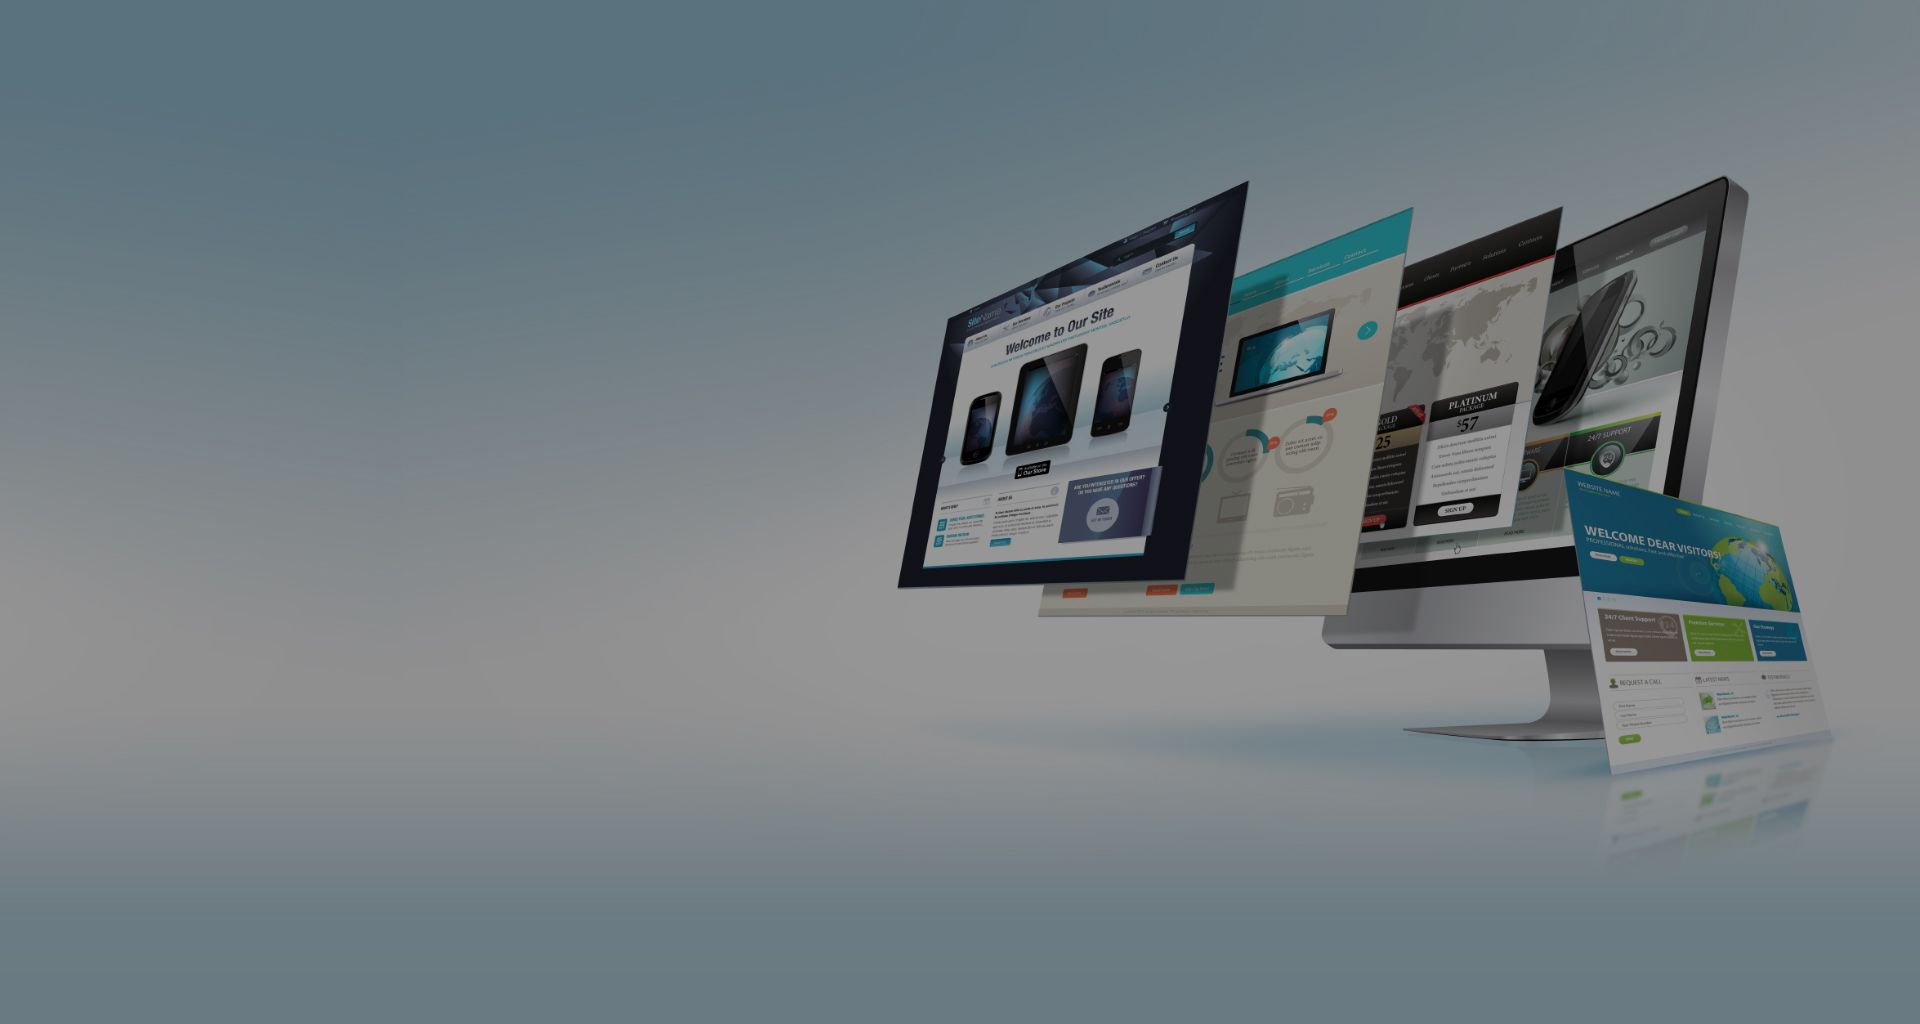 Responsive web design has been developed for several years